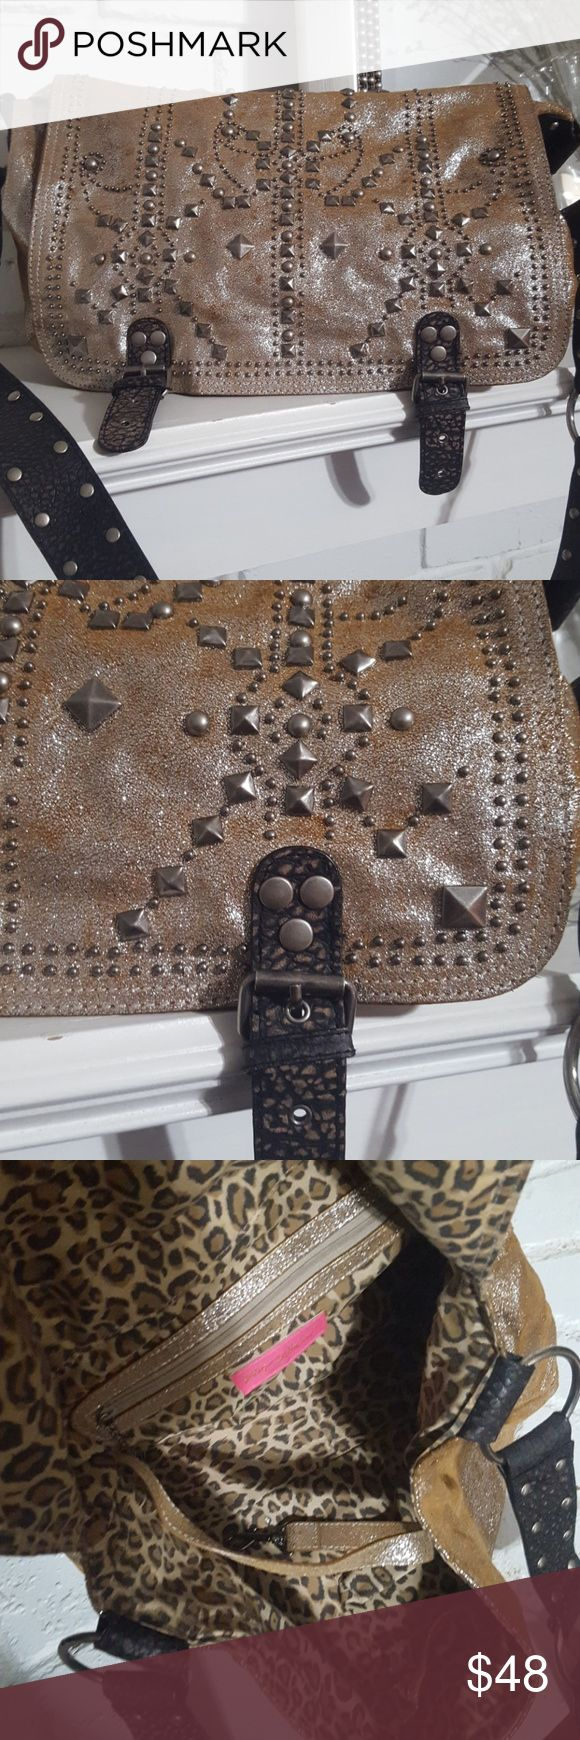 Sparkly bag!! Dust bag included.  Length 13 inches. Width 4.5 inches. Height 8.5 inches. Betsey Johnson Bags